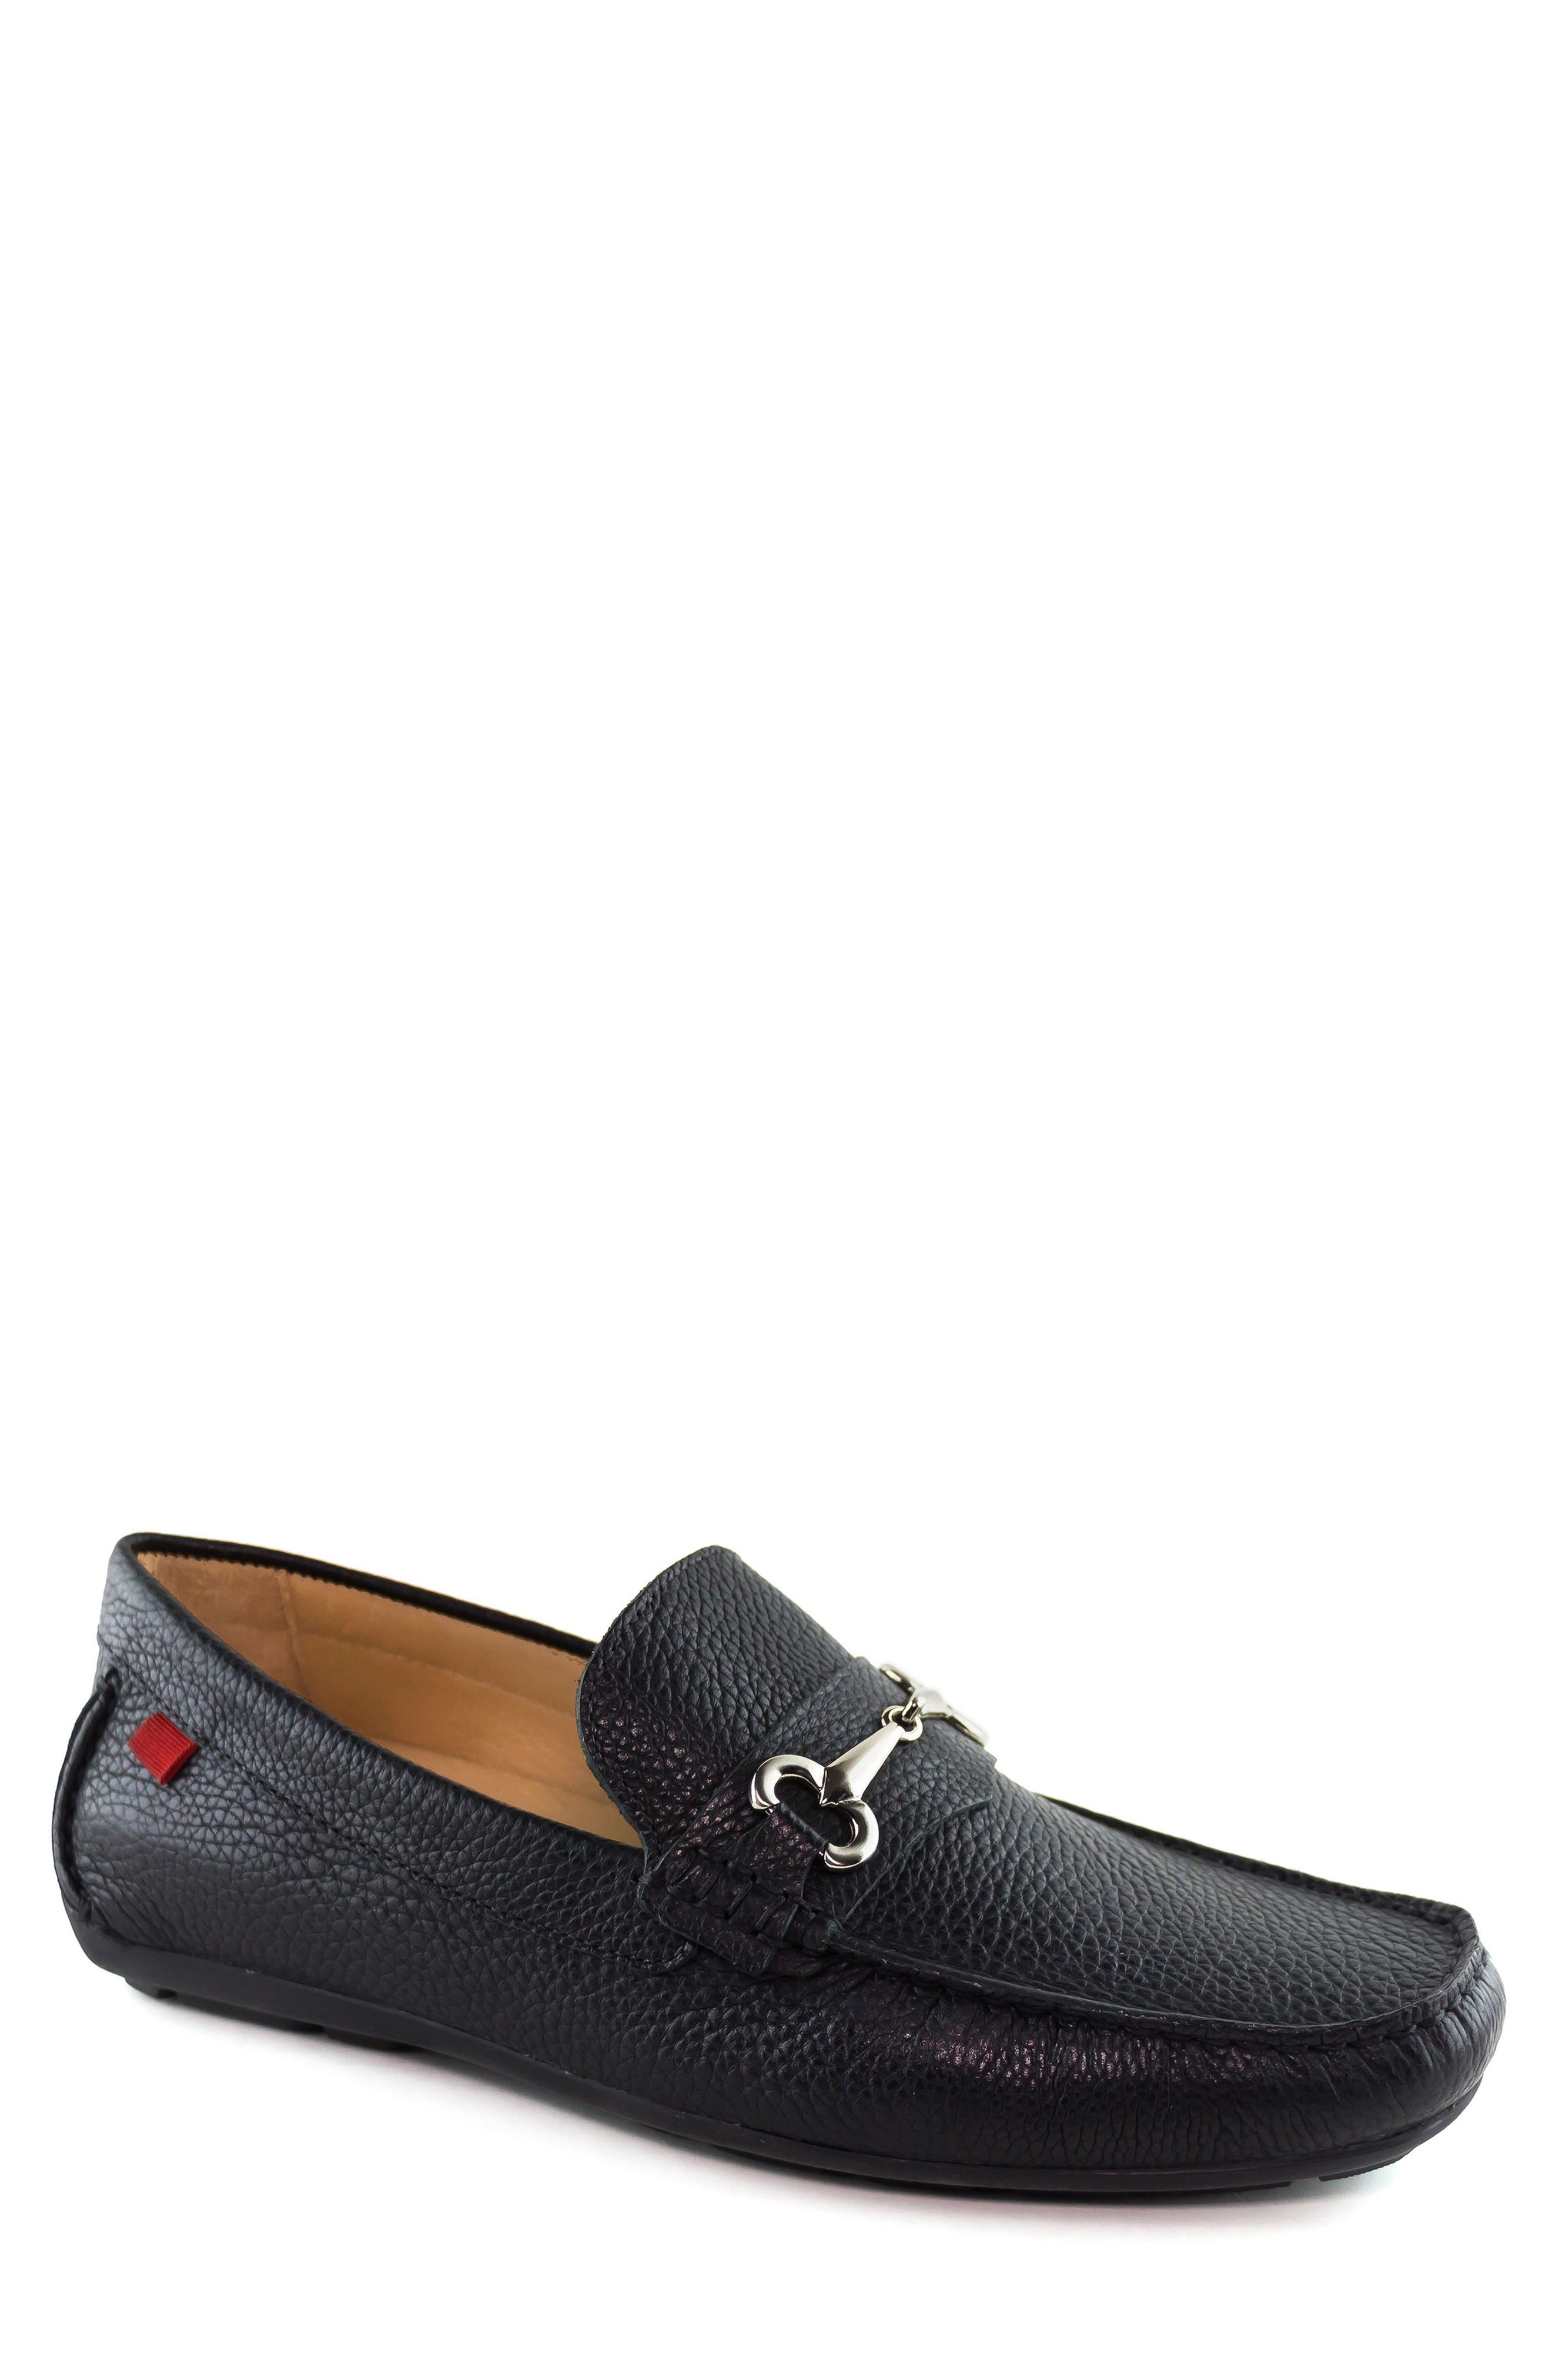 Wall Street Driving Shoe,                             Main thumbnail 1, color,                             BLACK LEATHER